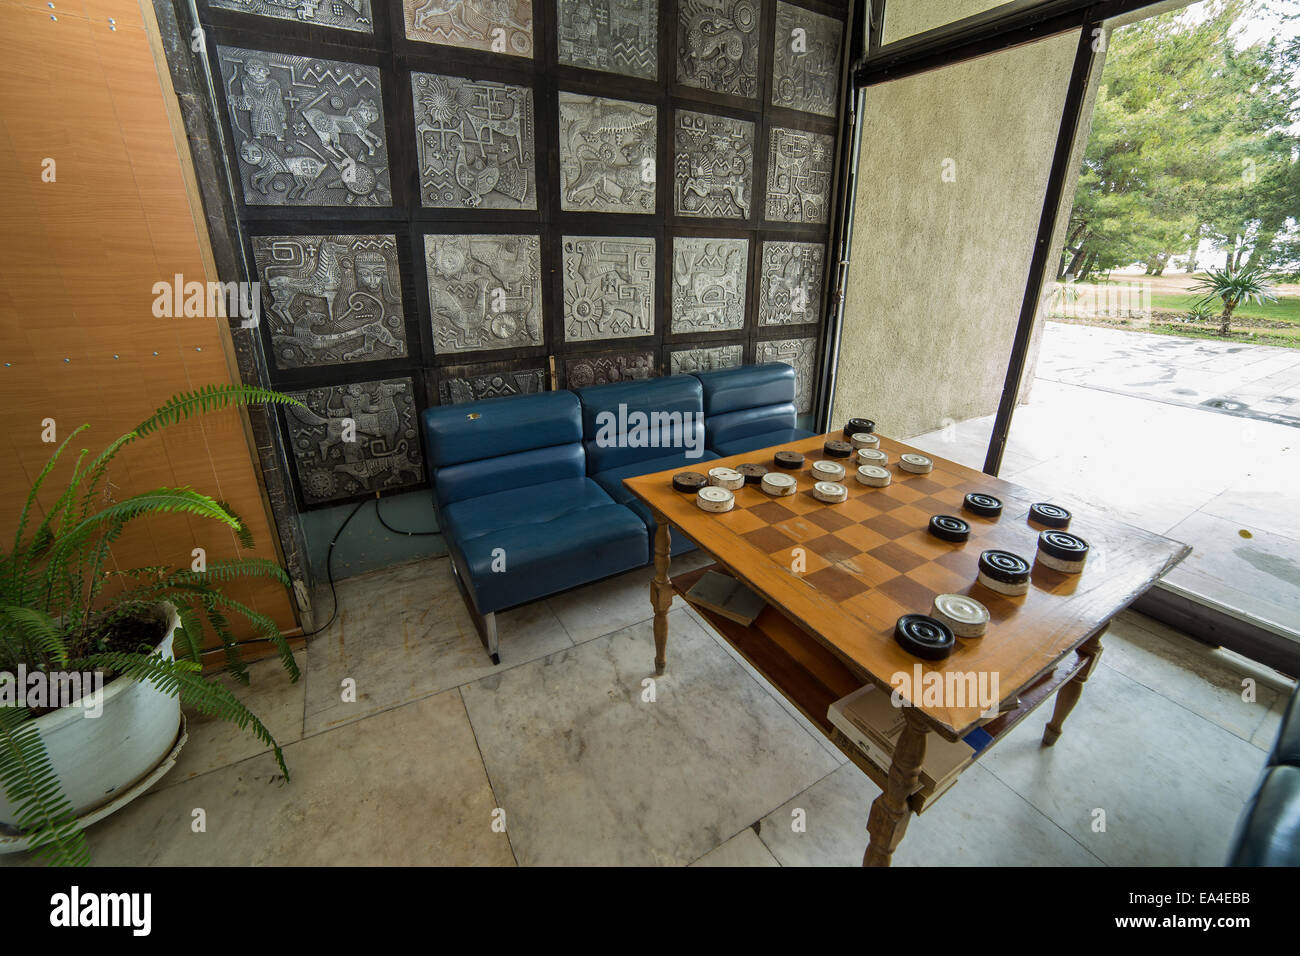 Table for draughts (checkers) game Stock Photo